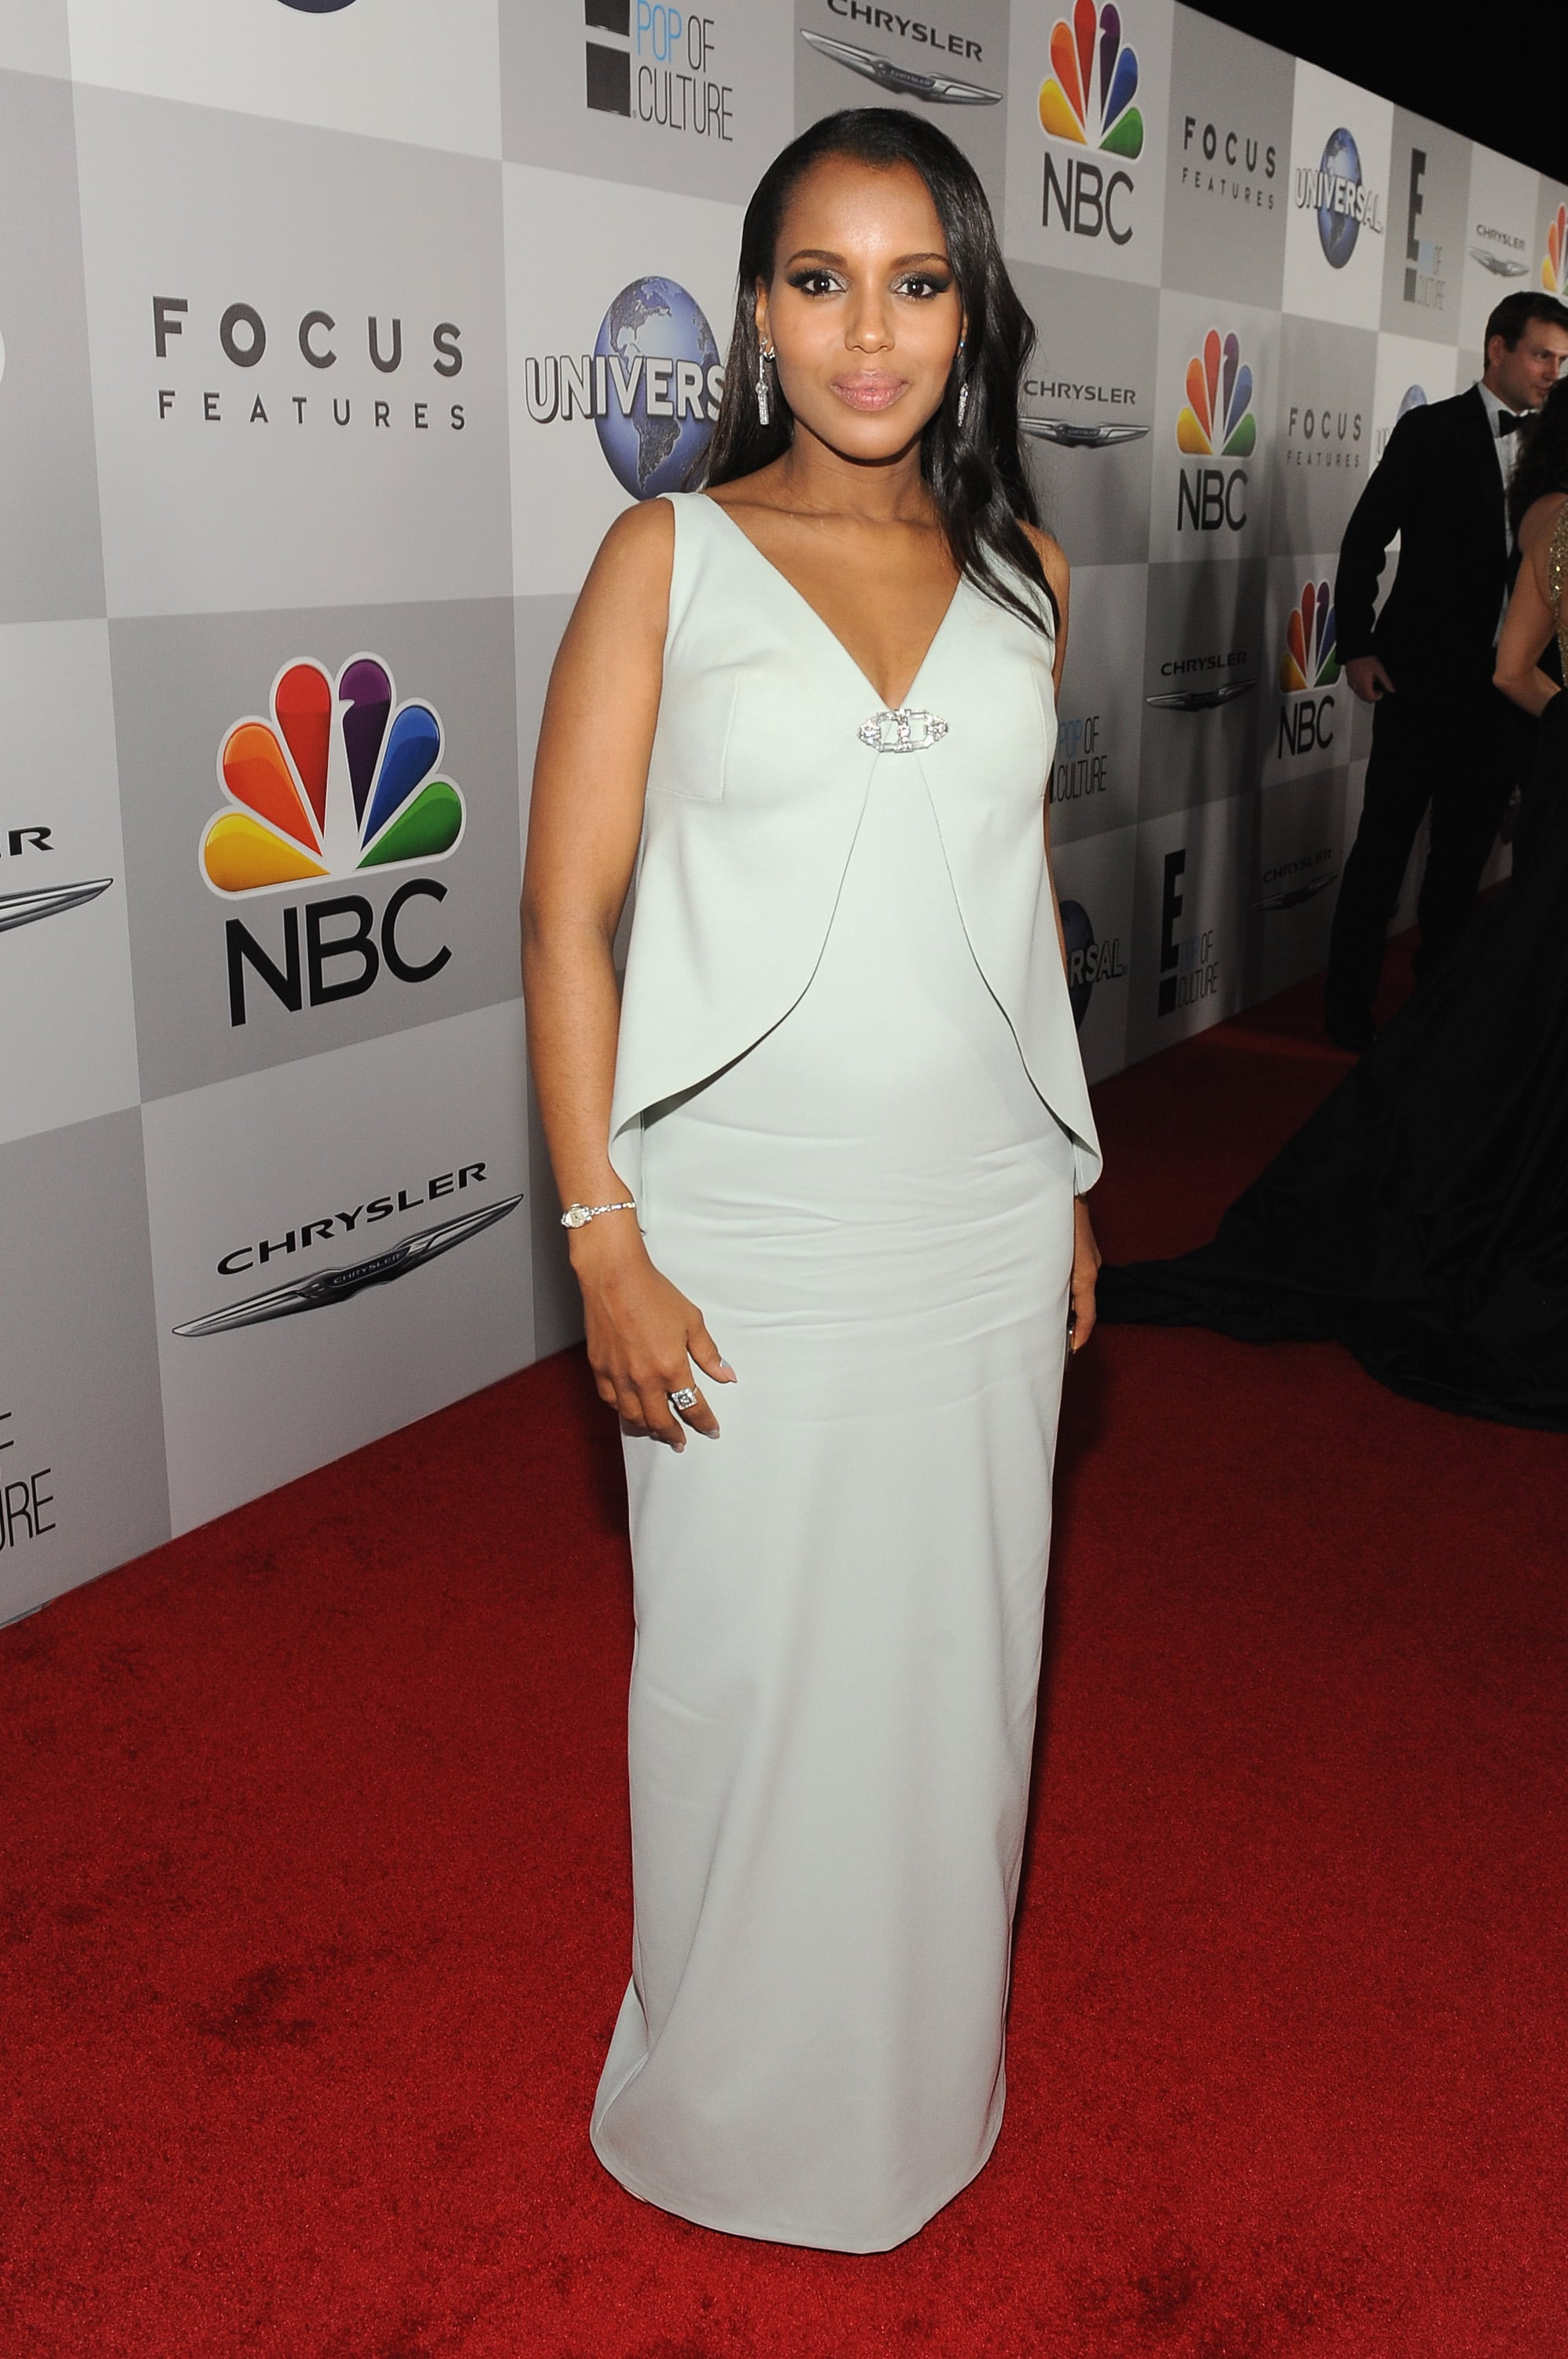 Kerry Washington brought her bump on the red carpet.